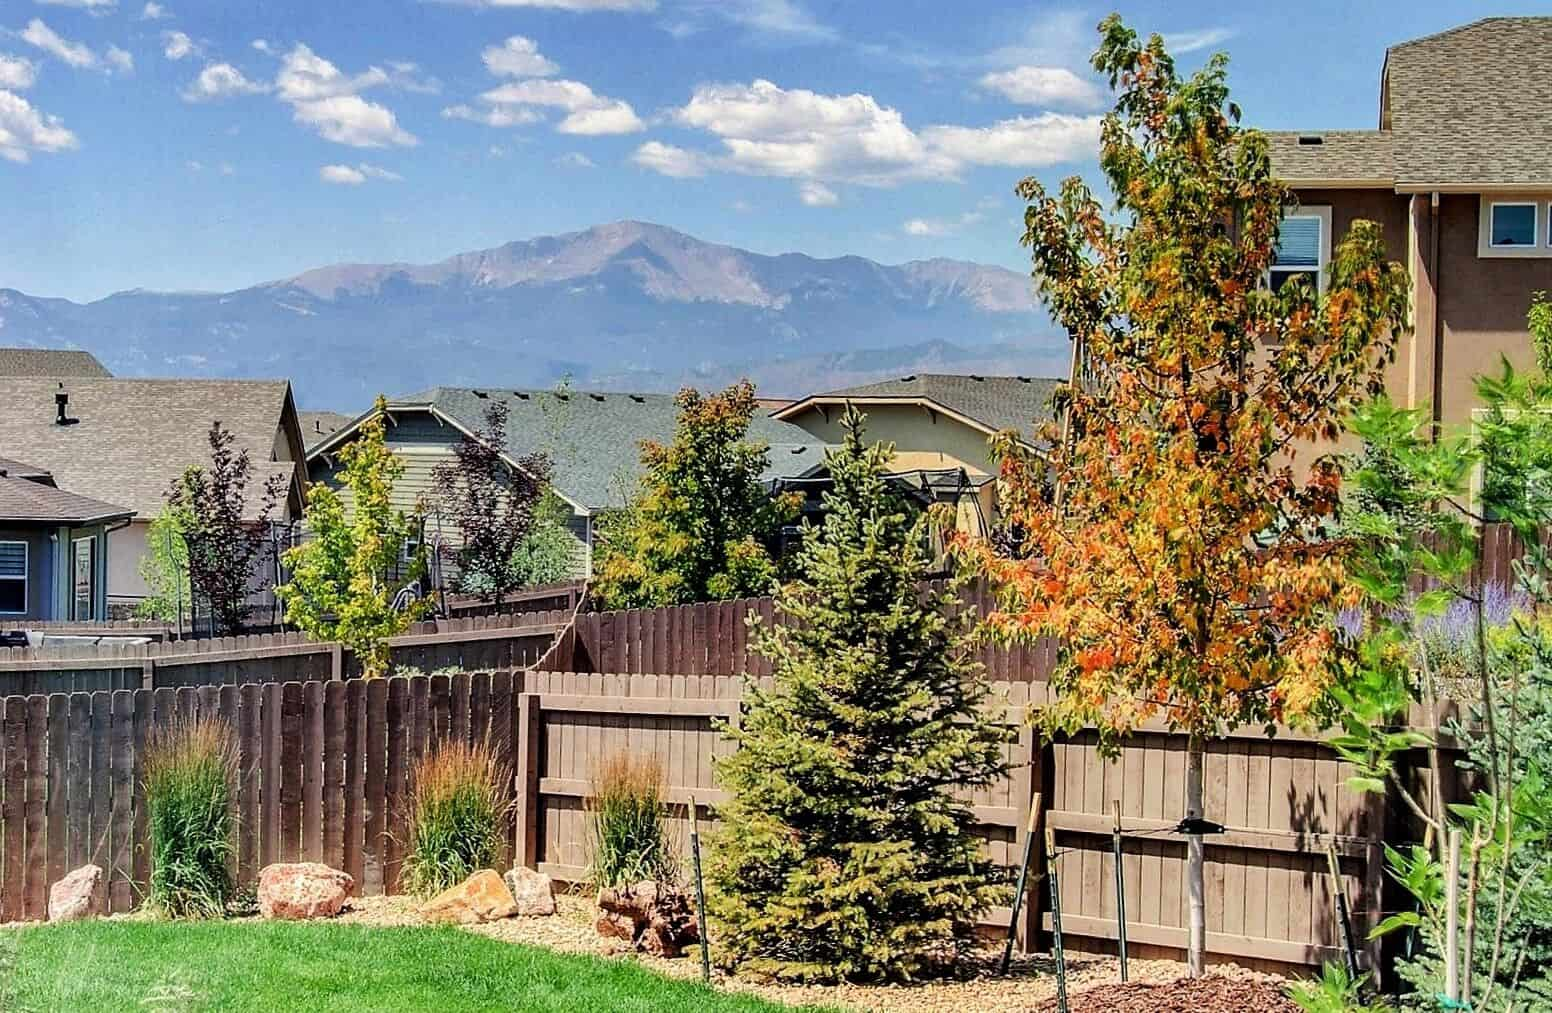 View of Pikes Peak from Backyard